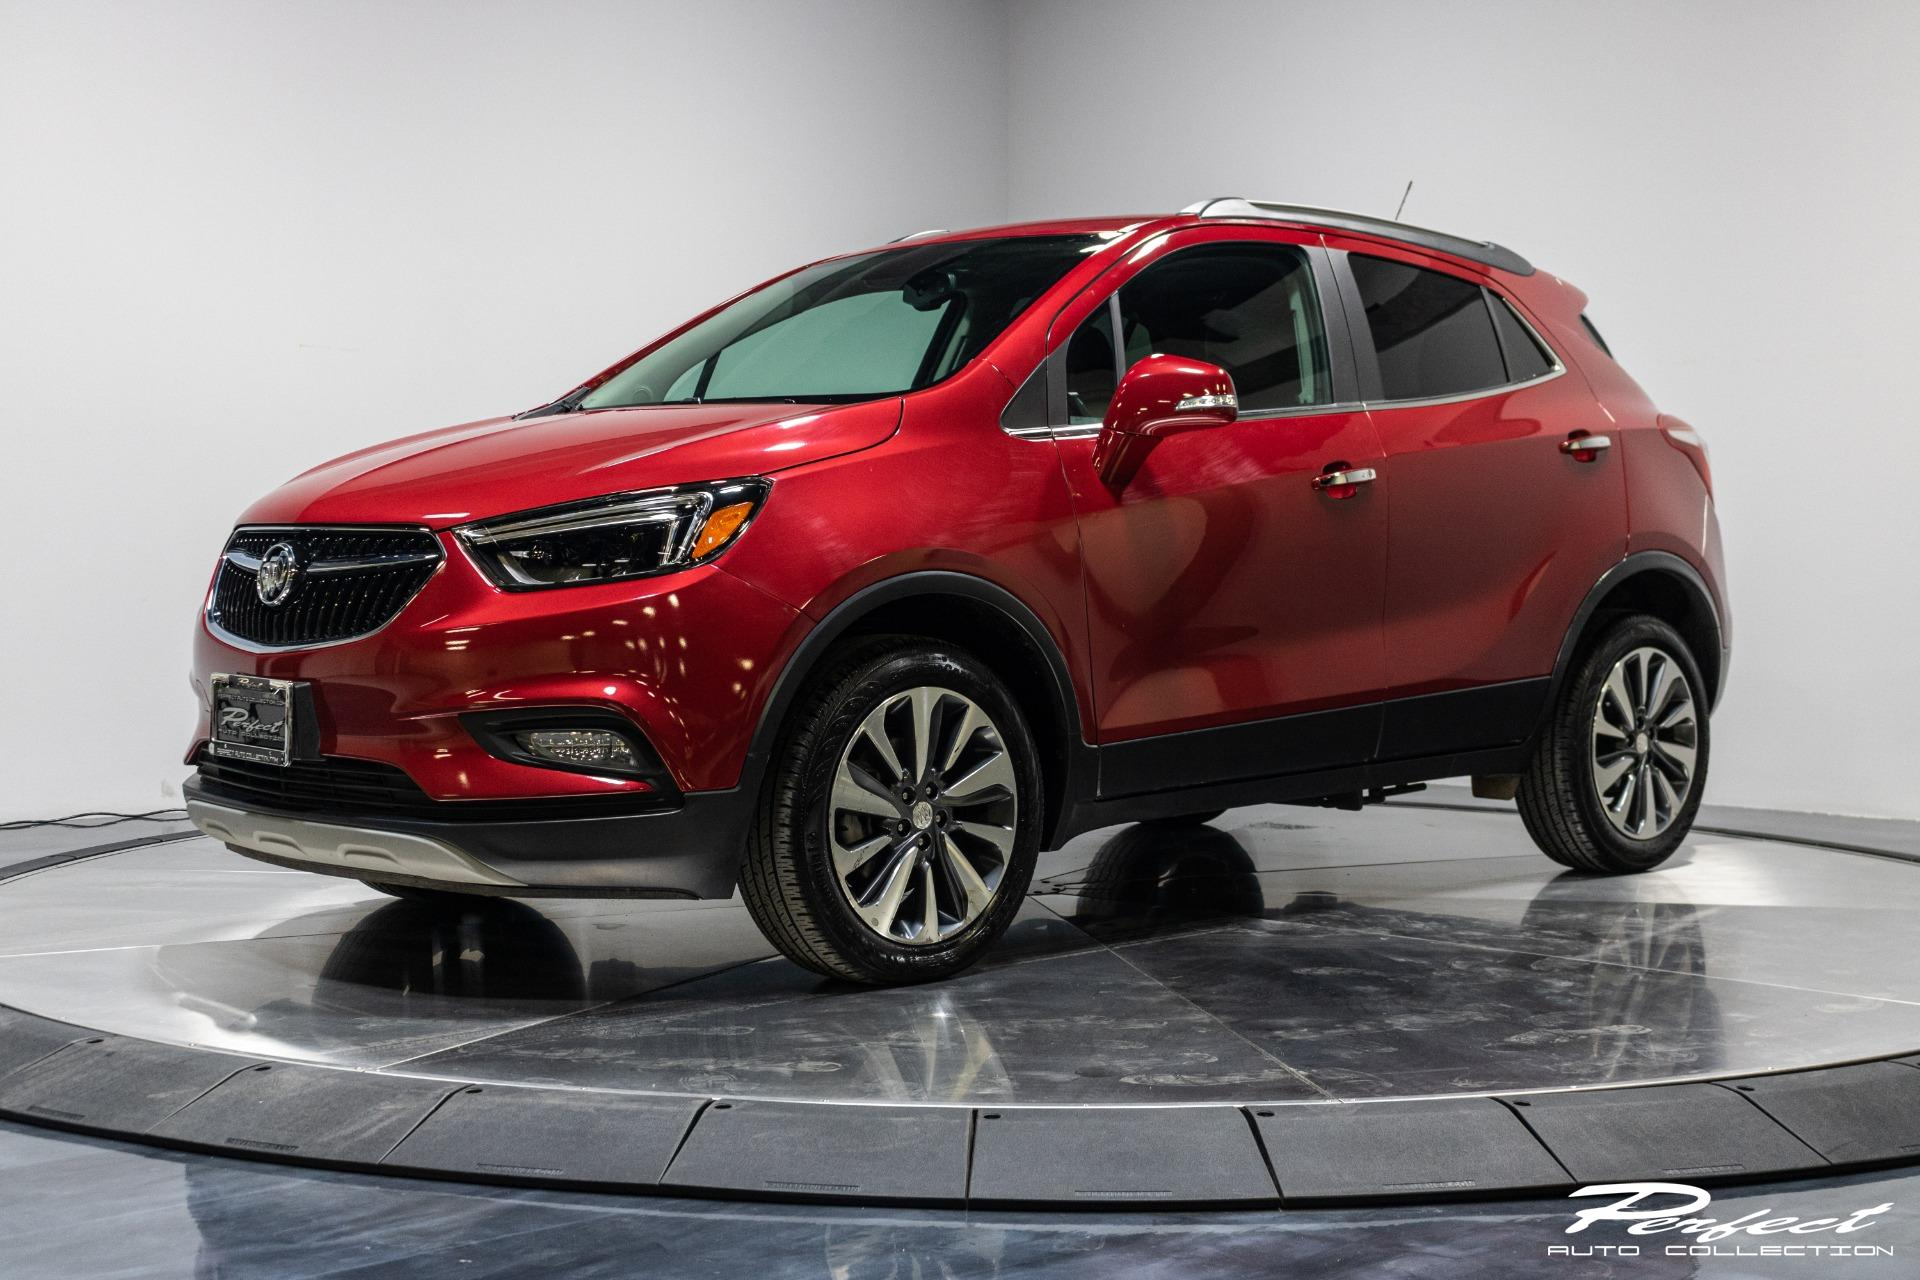 Used 2019 Buick Encore Essence for sale $16,493 at Perfect Auto Collection in Akron OH 44310 1